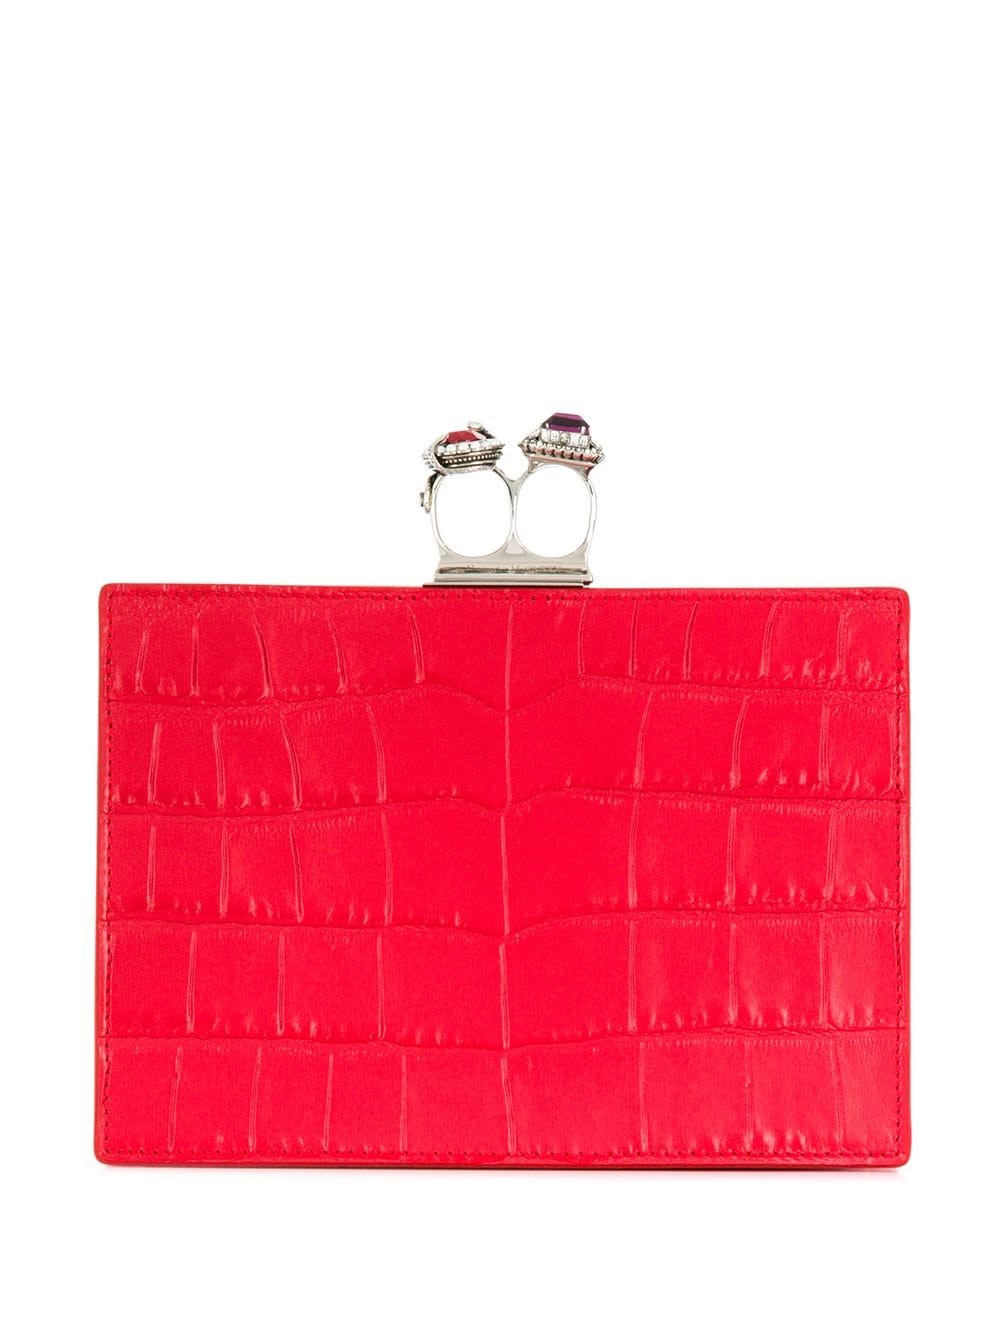 87b6c4ce8 Crocodile-effect jewelled leather clutch - ALEXANDER MCQUEEN - Russocapri